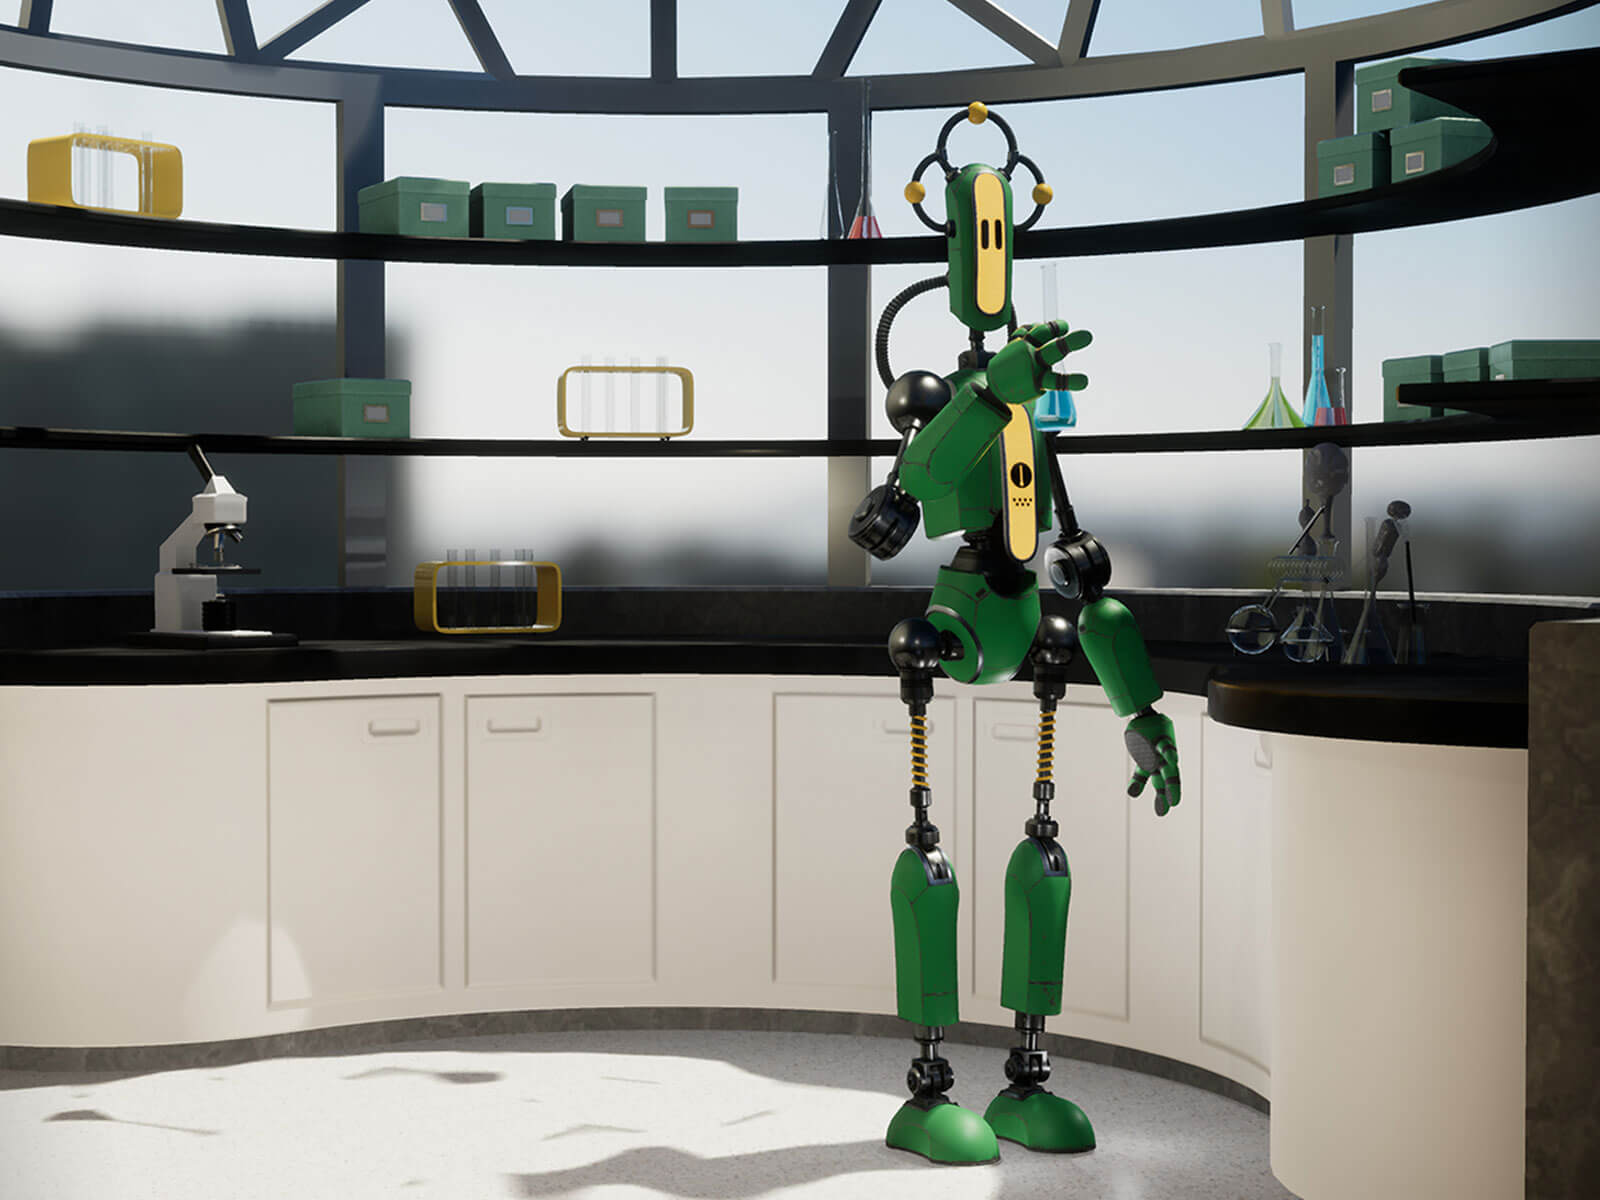 A slender, green robot with exposed, black, metal joints stands near a counter surrounded by scientific equipment.